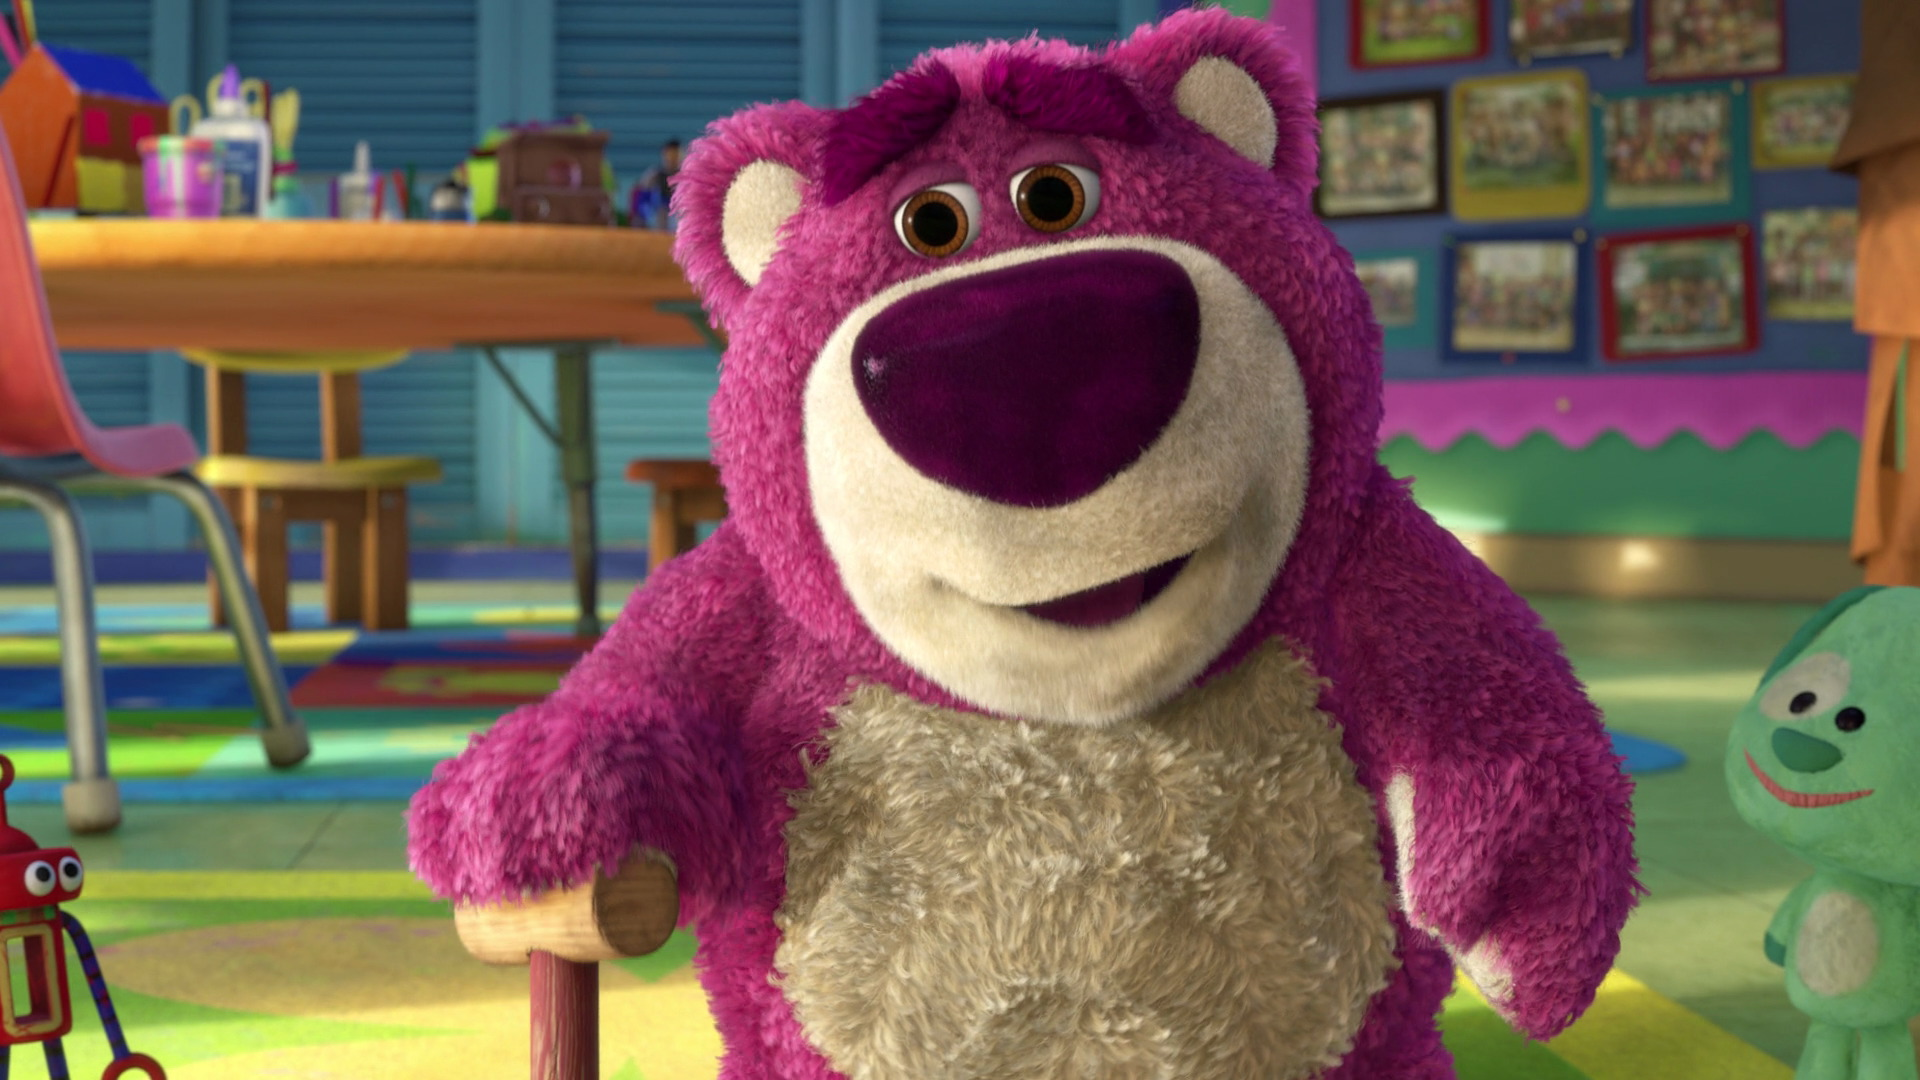 lotso-personnage-toy-story-3-01